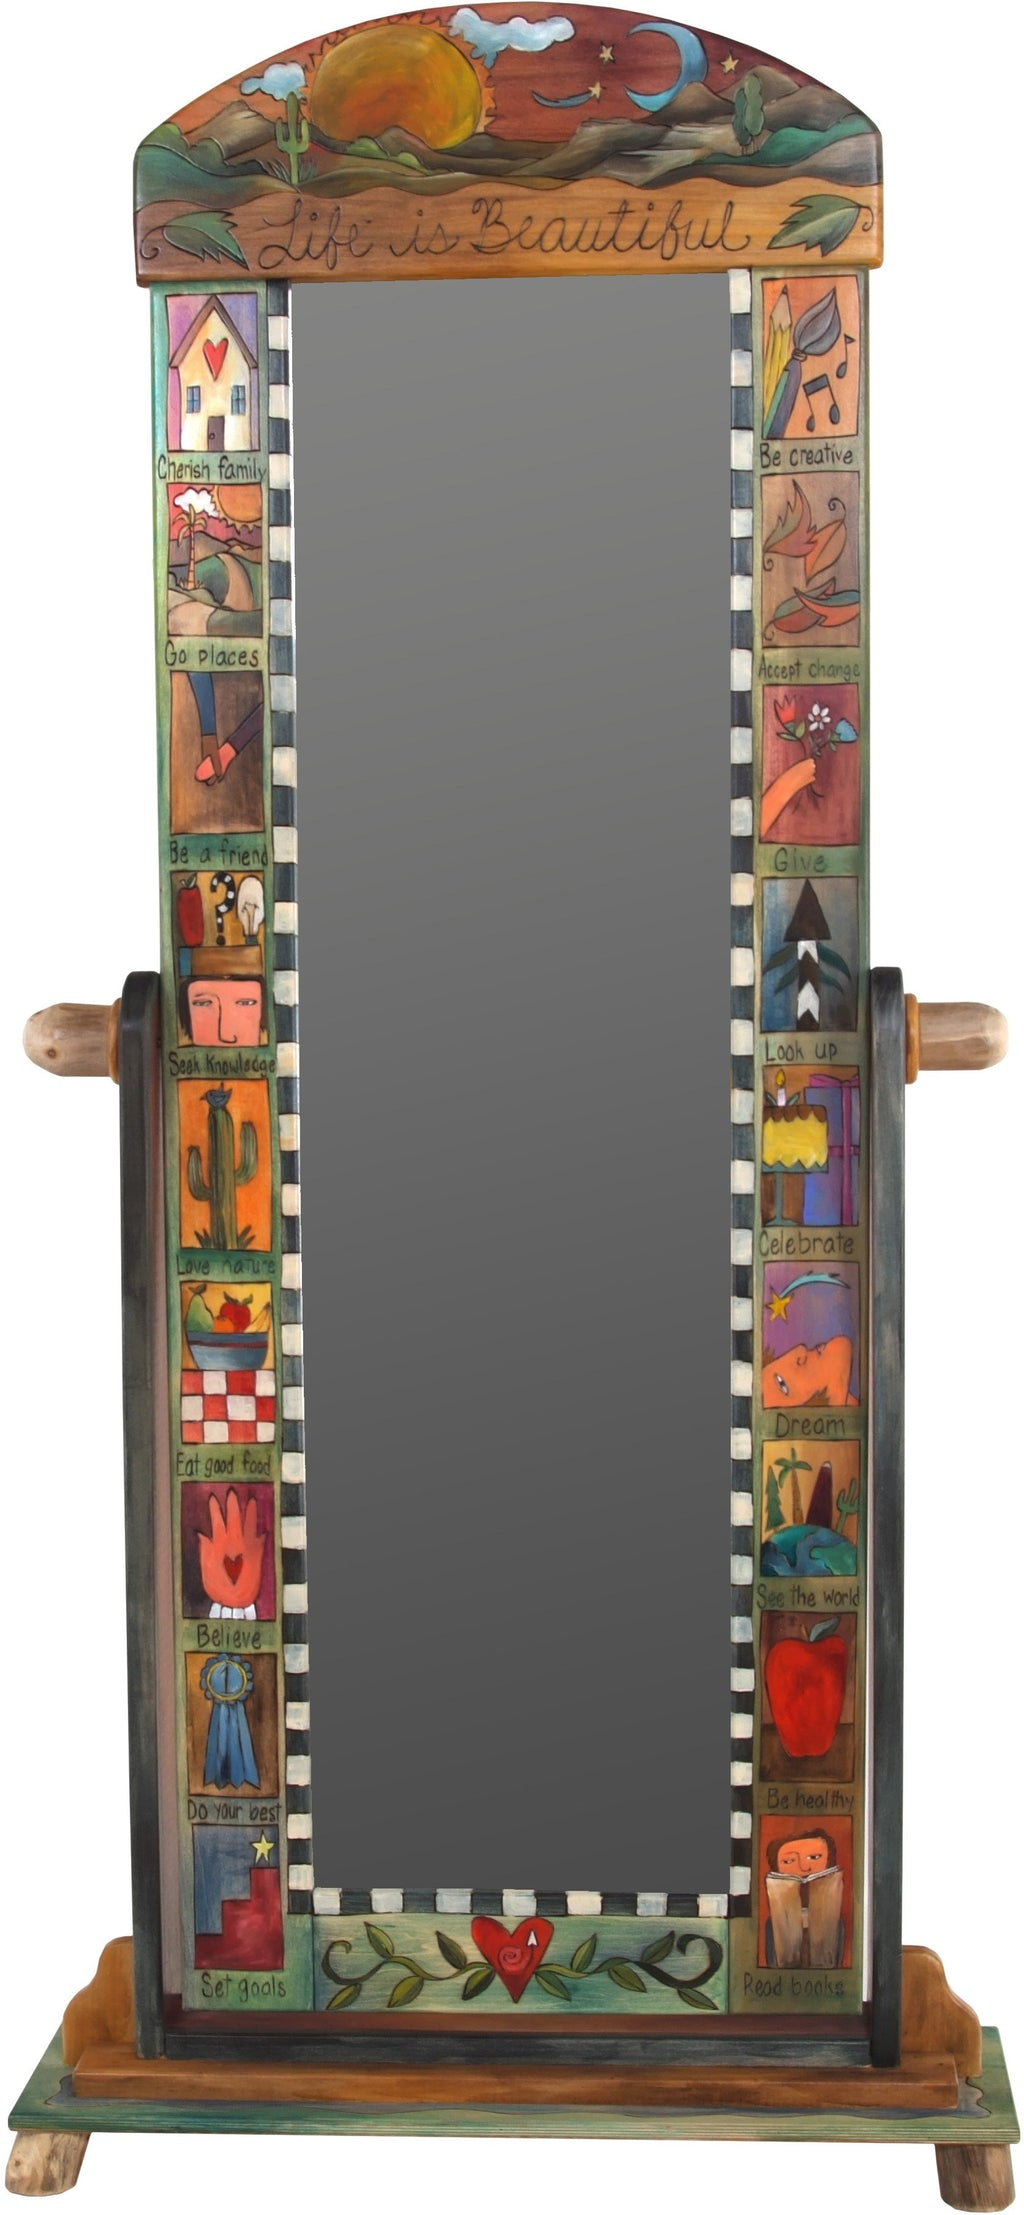 "Wardrobe Mirror on Stand –  ""Life is Beautiful"" mirror on stand with sun and moon over the rolling hills motif"